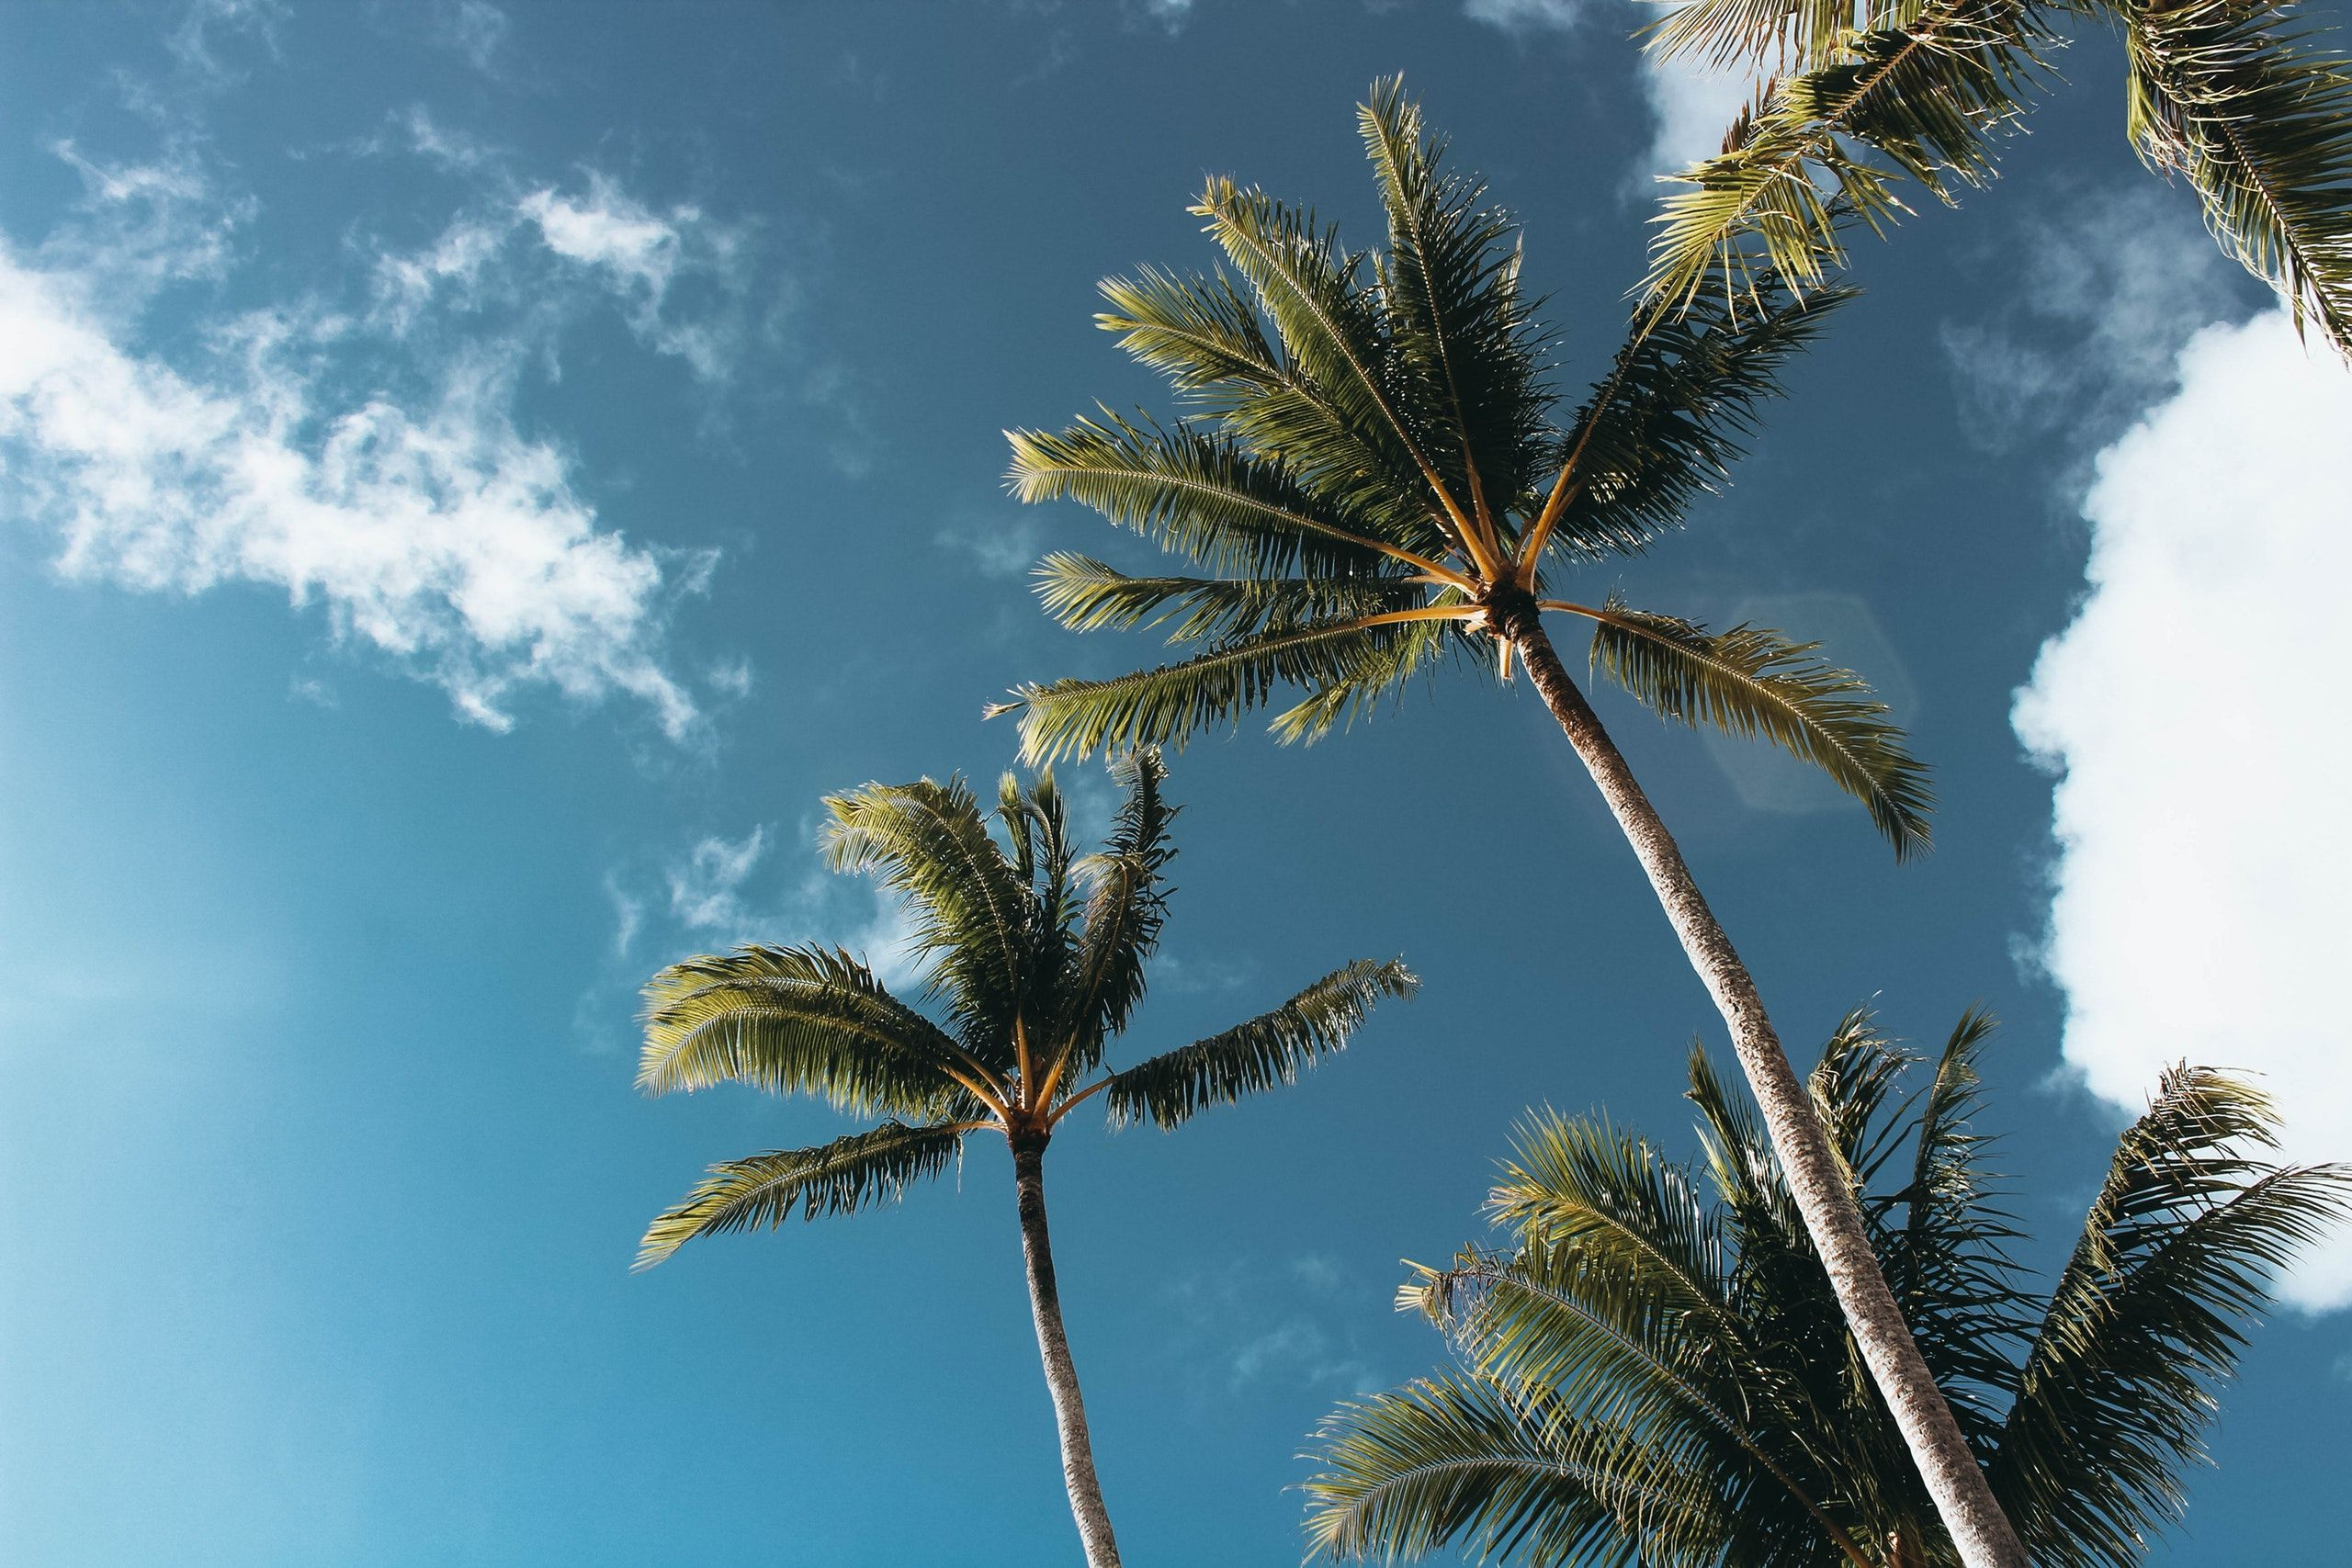 California Palm Trees Wallpapers Top Free California Palm Trees Backgrounds Wallpaperaccess